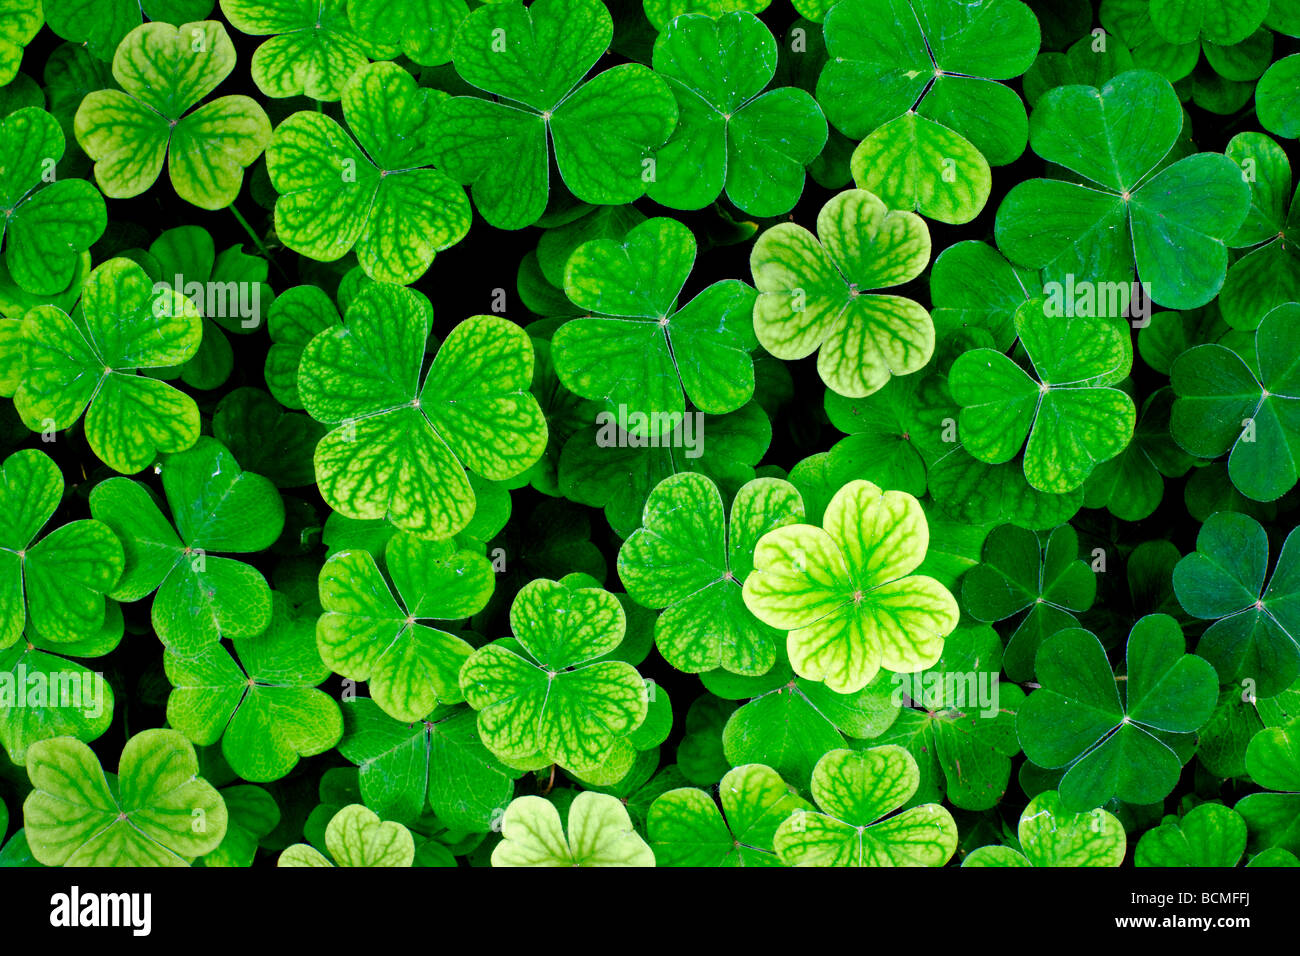 Four Leaf Clover Standing Out In A Bed Of Three Leaf Clover Stock